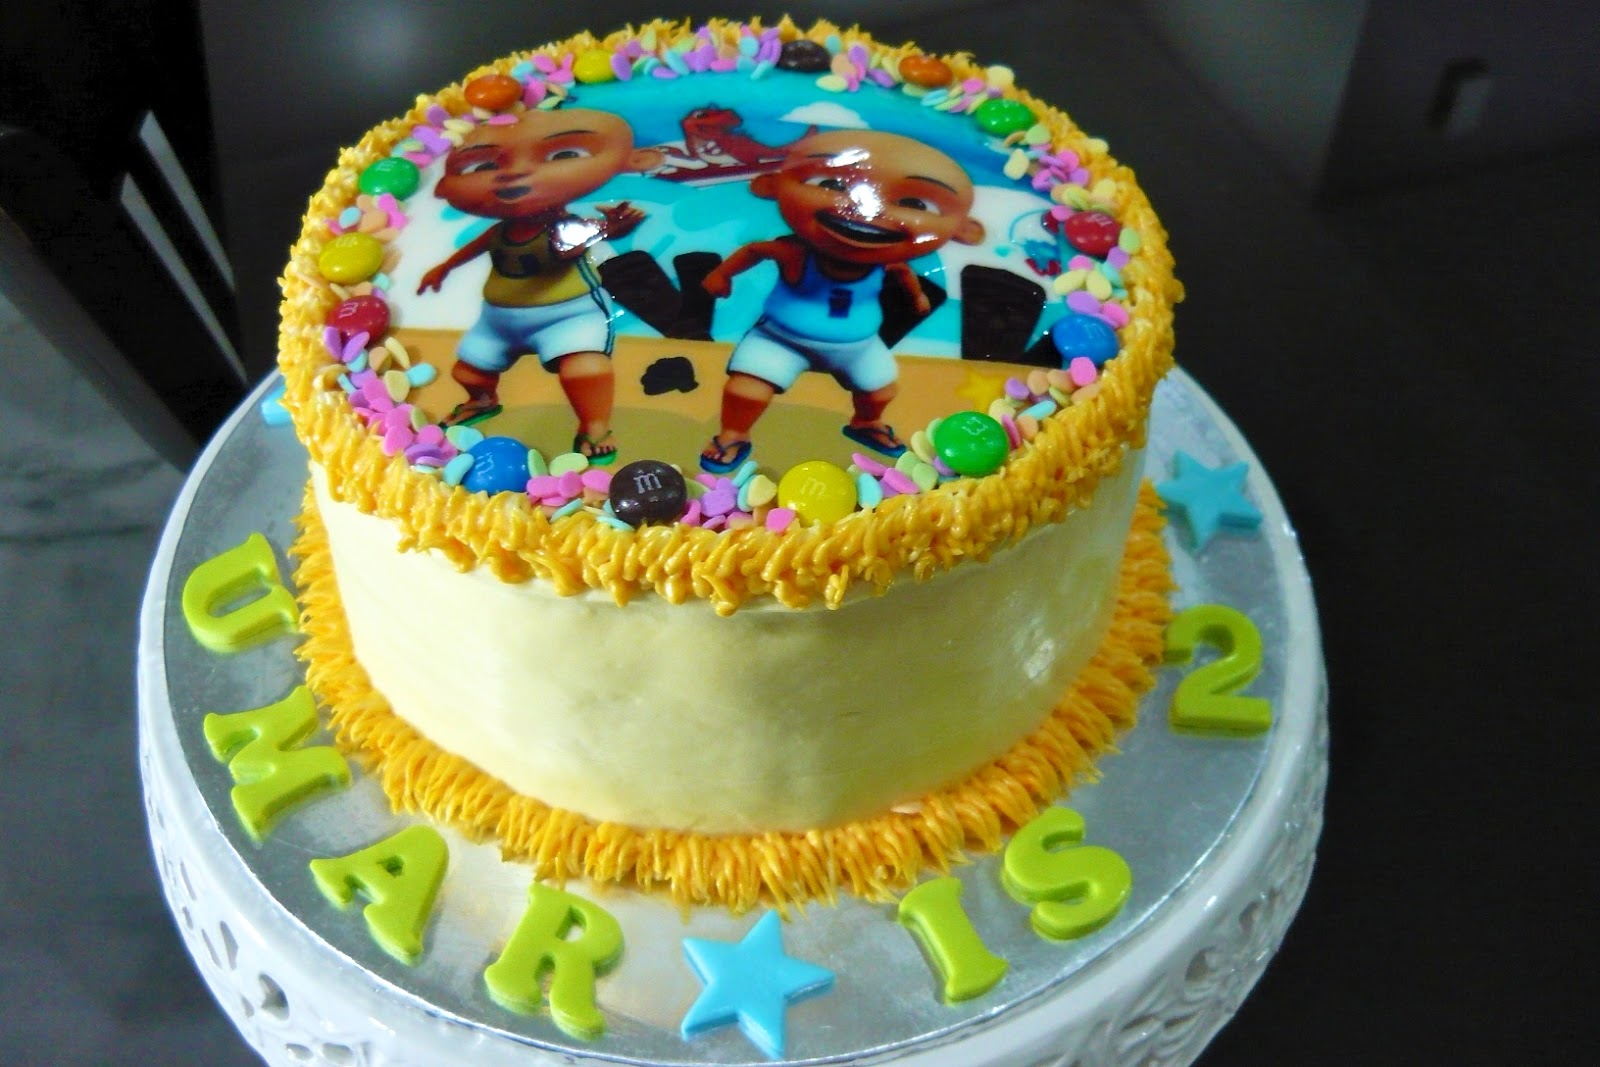 crazy about cupcakes!: Ombre Cake with Upin & Ipin and Boboiboy EI